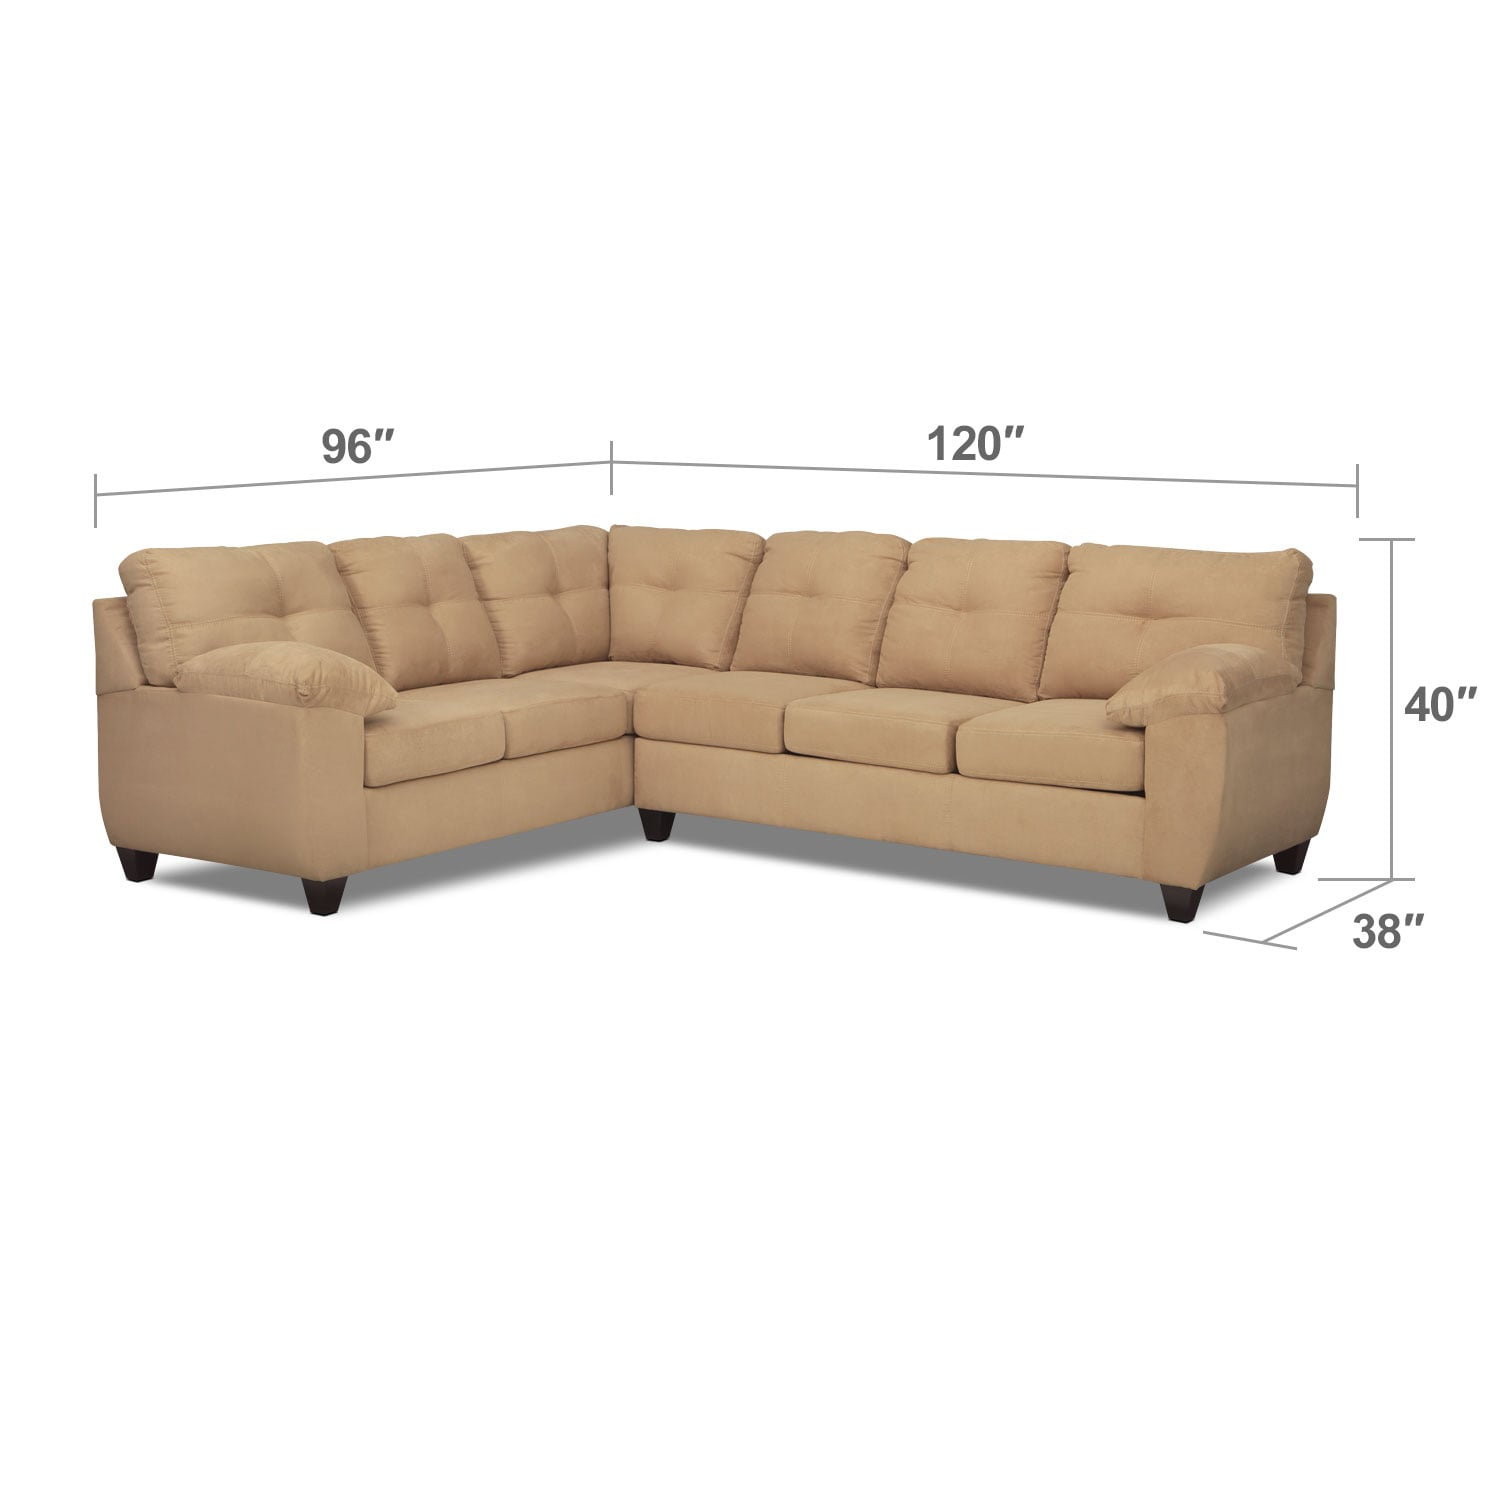 Living Room Furniture - Rialto 2-Piece Sectional with Right-Facing Innerspring Sleeper - Camel